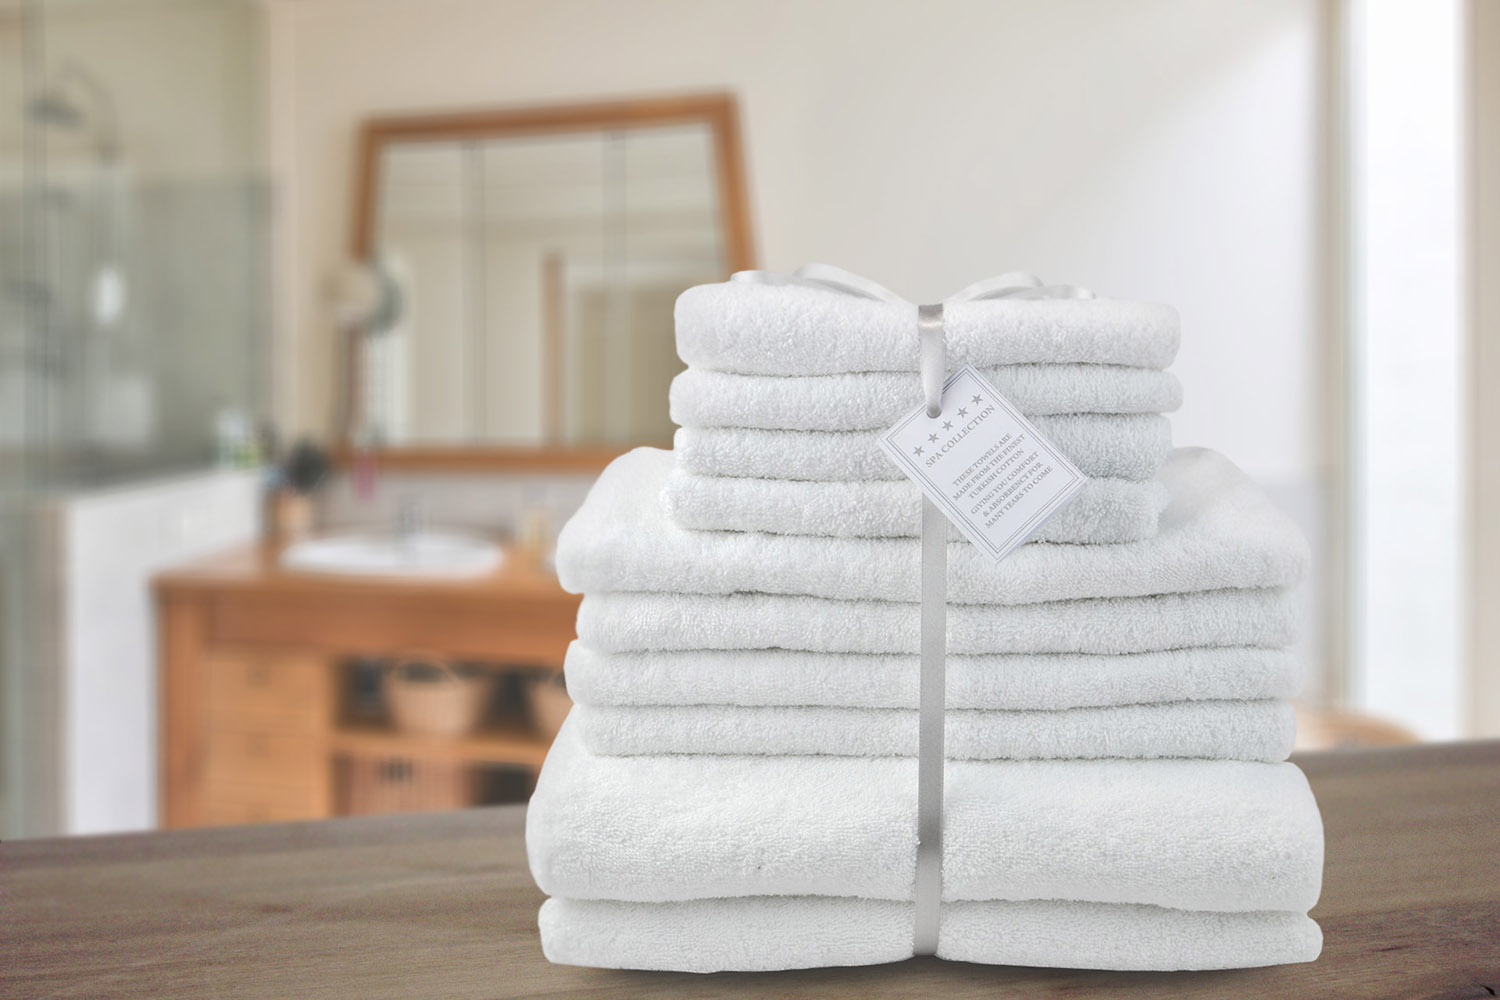 Luxurious Super Soft 100% Turkish Cotton Towel Sets (6 or 10 Pieces)